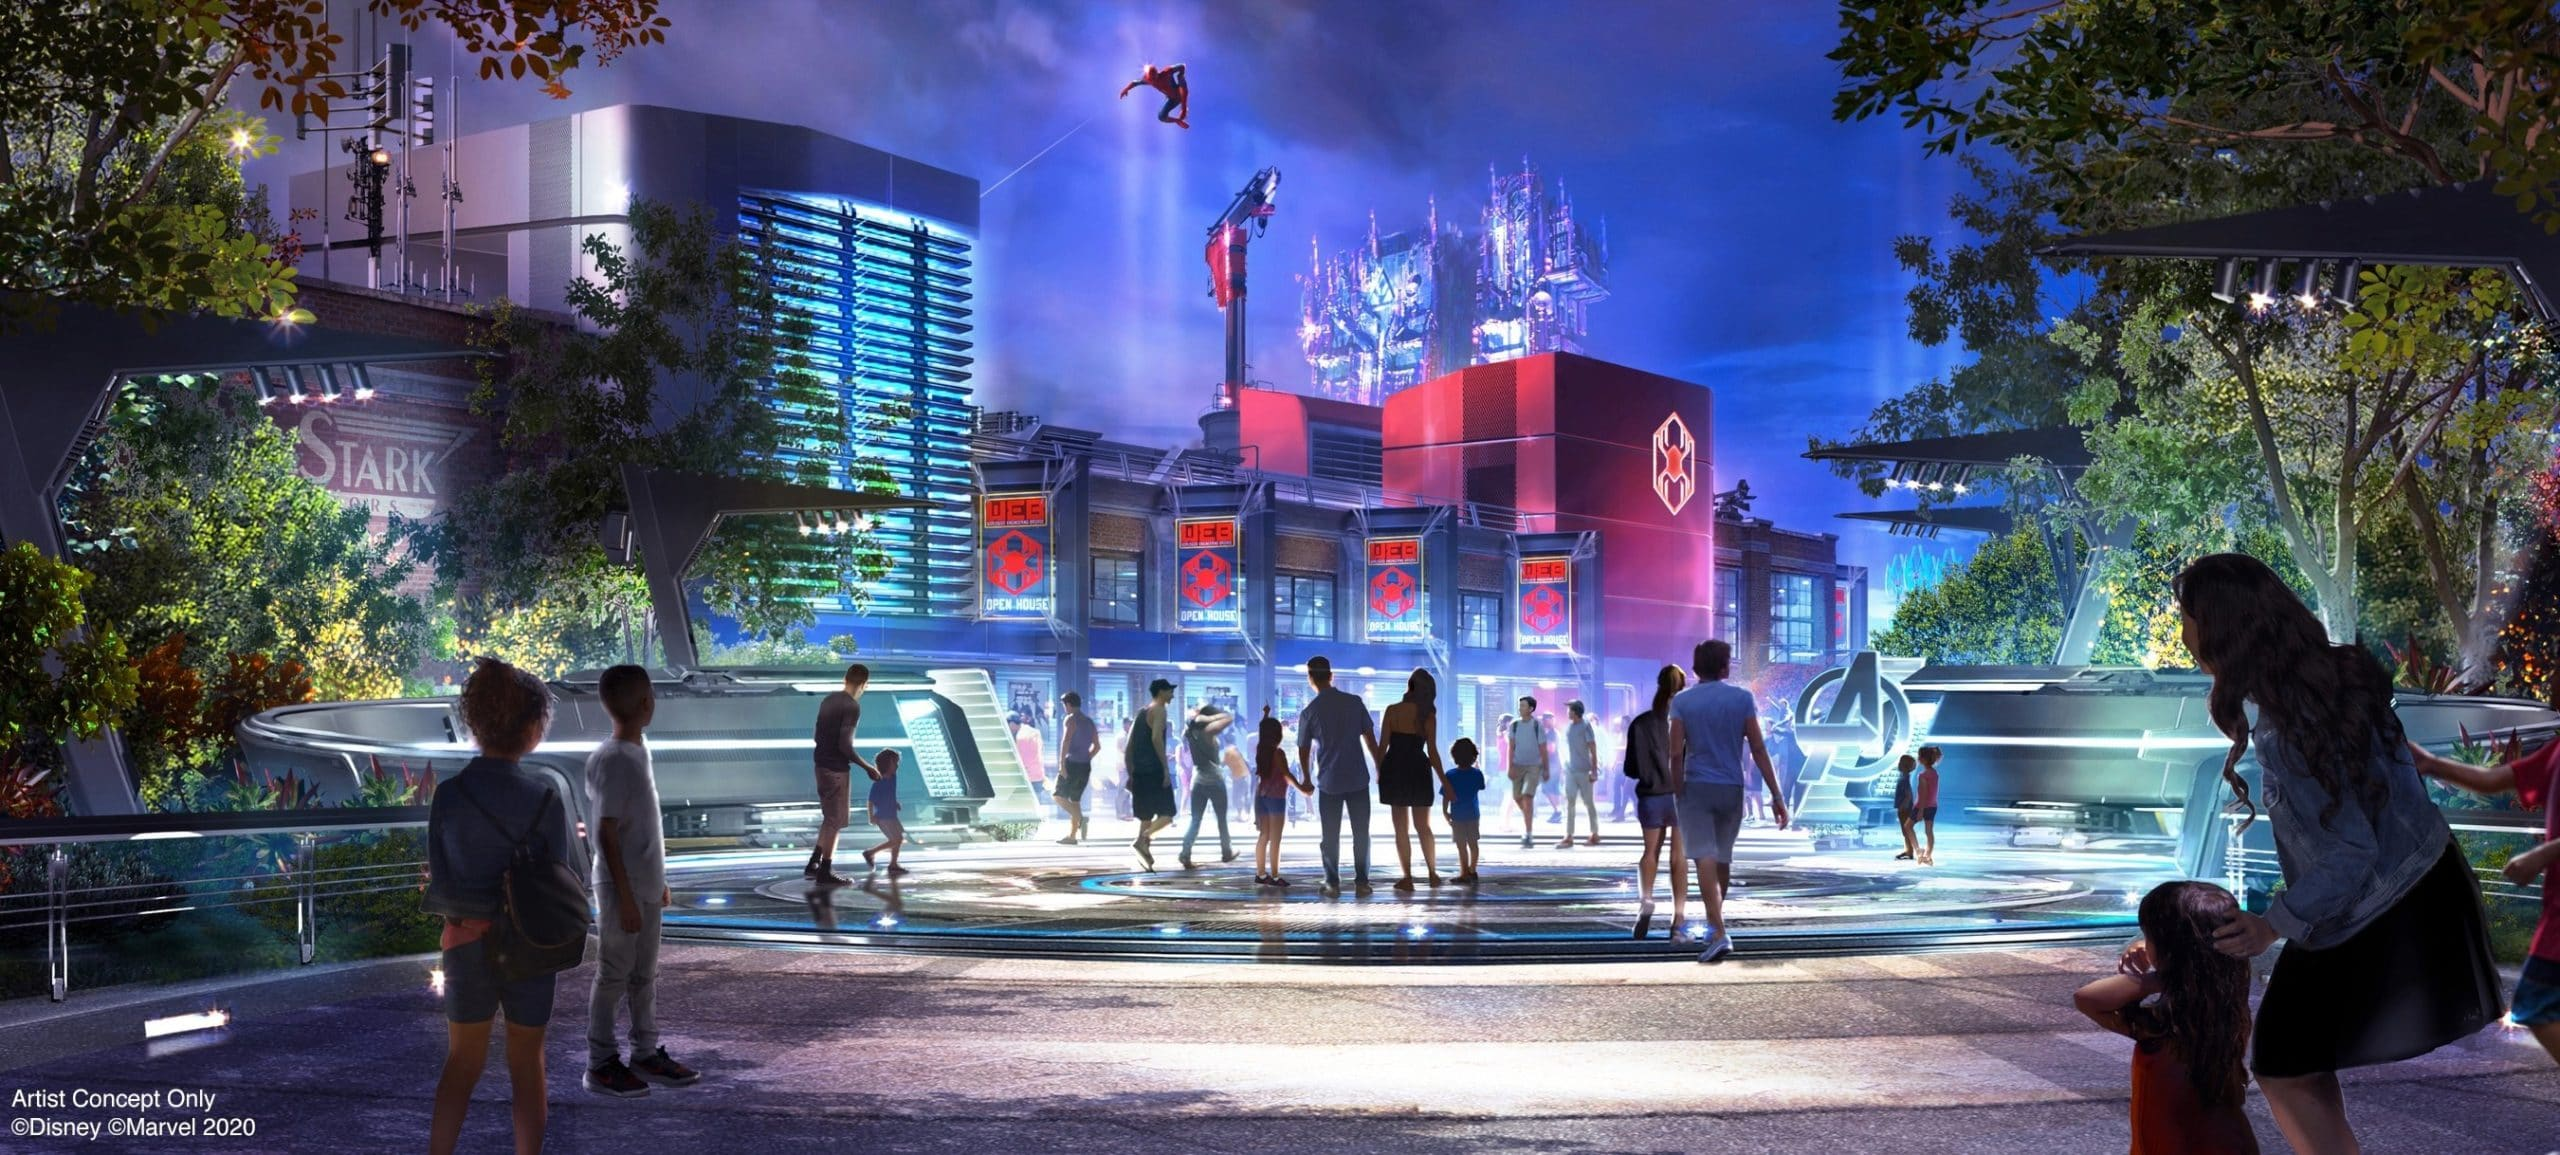 Here's what you'll see at Disneyland's Avengers Campus 15